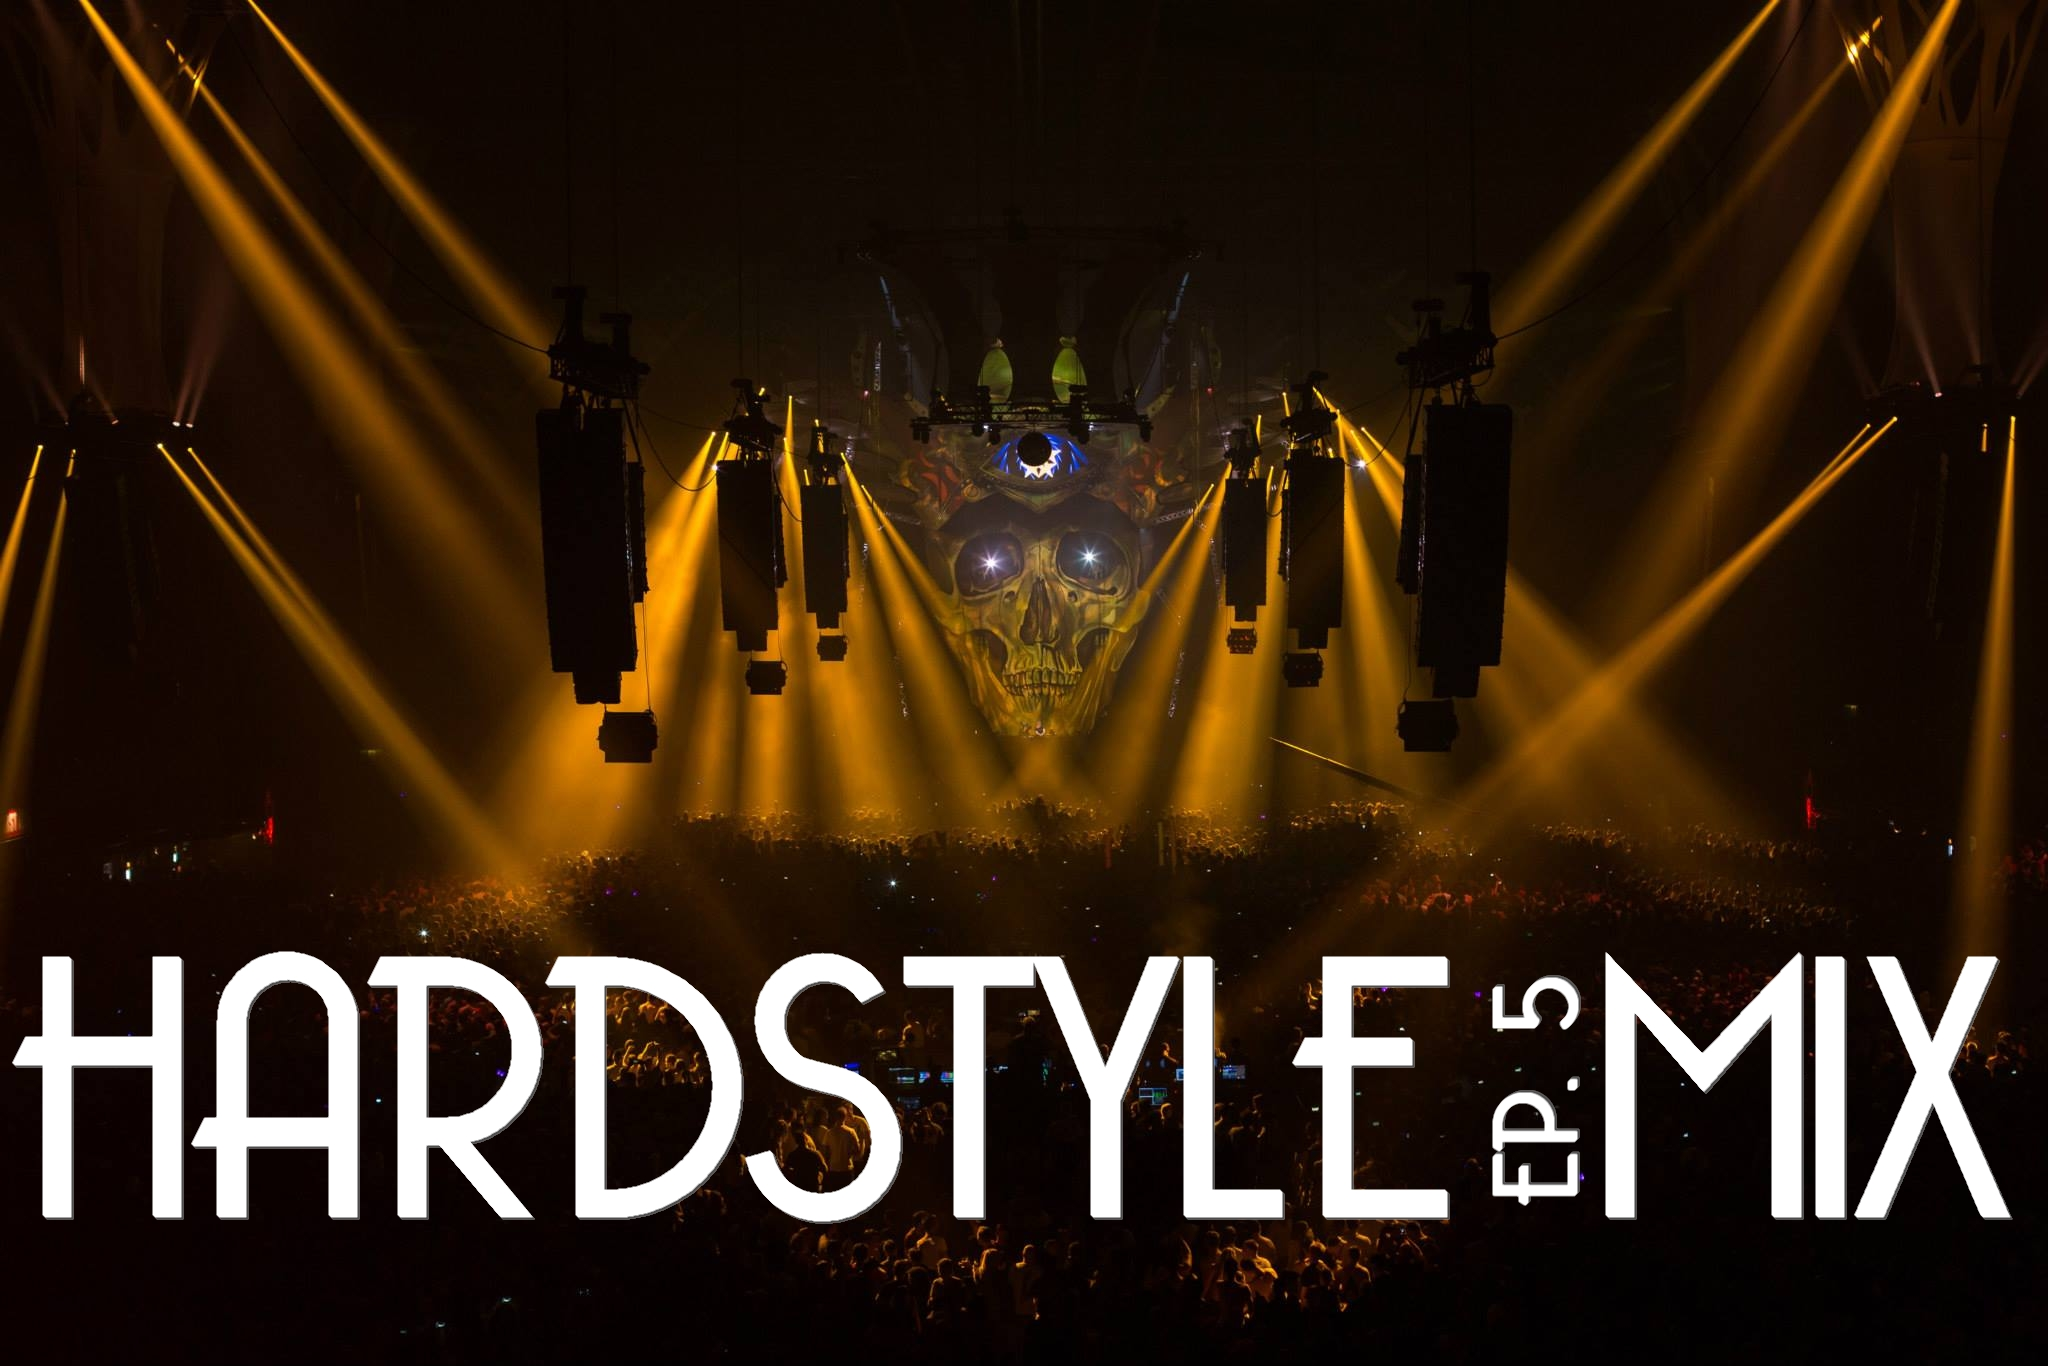 Droplover - Hardstyle MIX EP.5